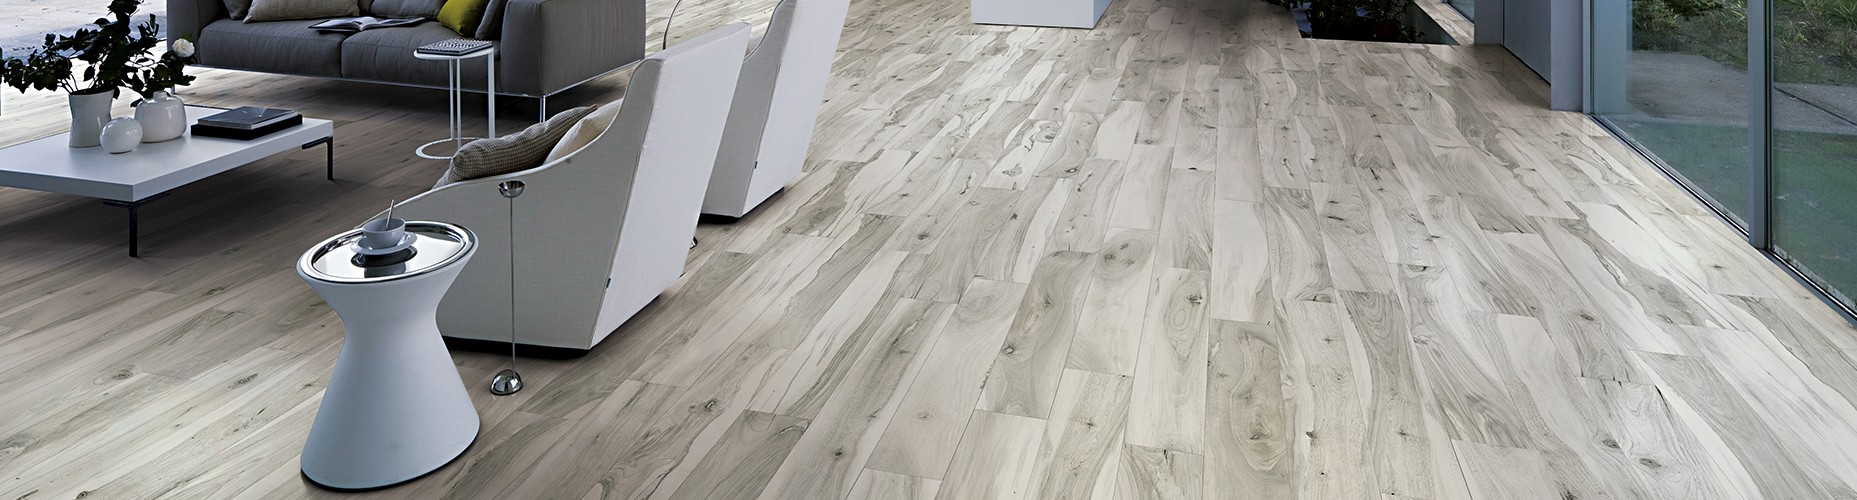 20-50% OFF ALL TILES ON NOW